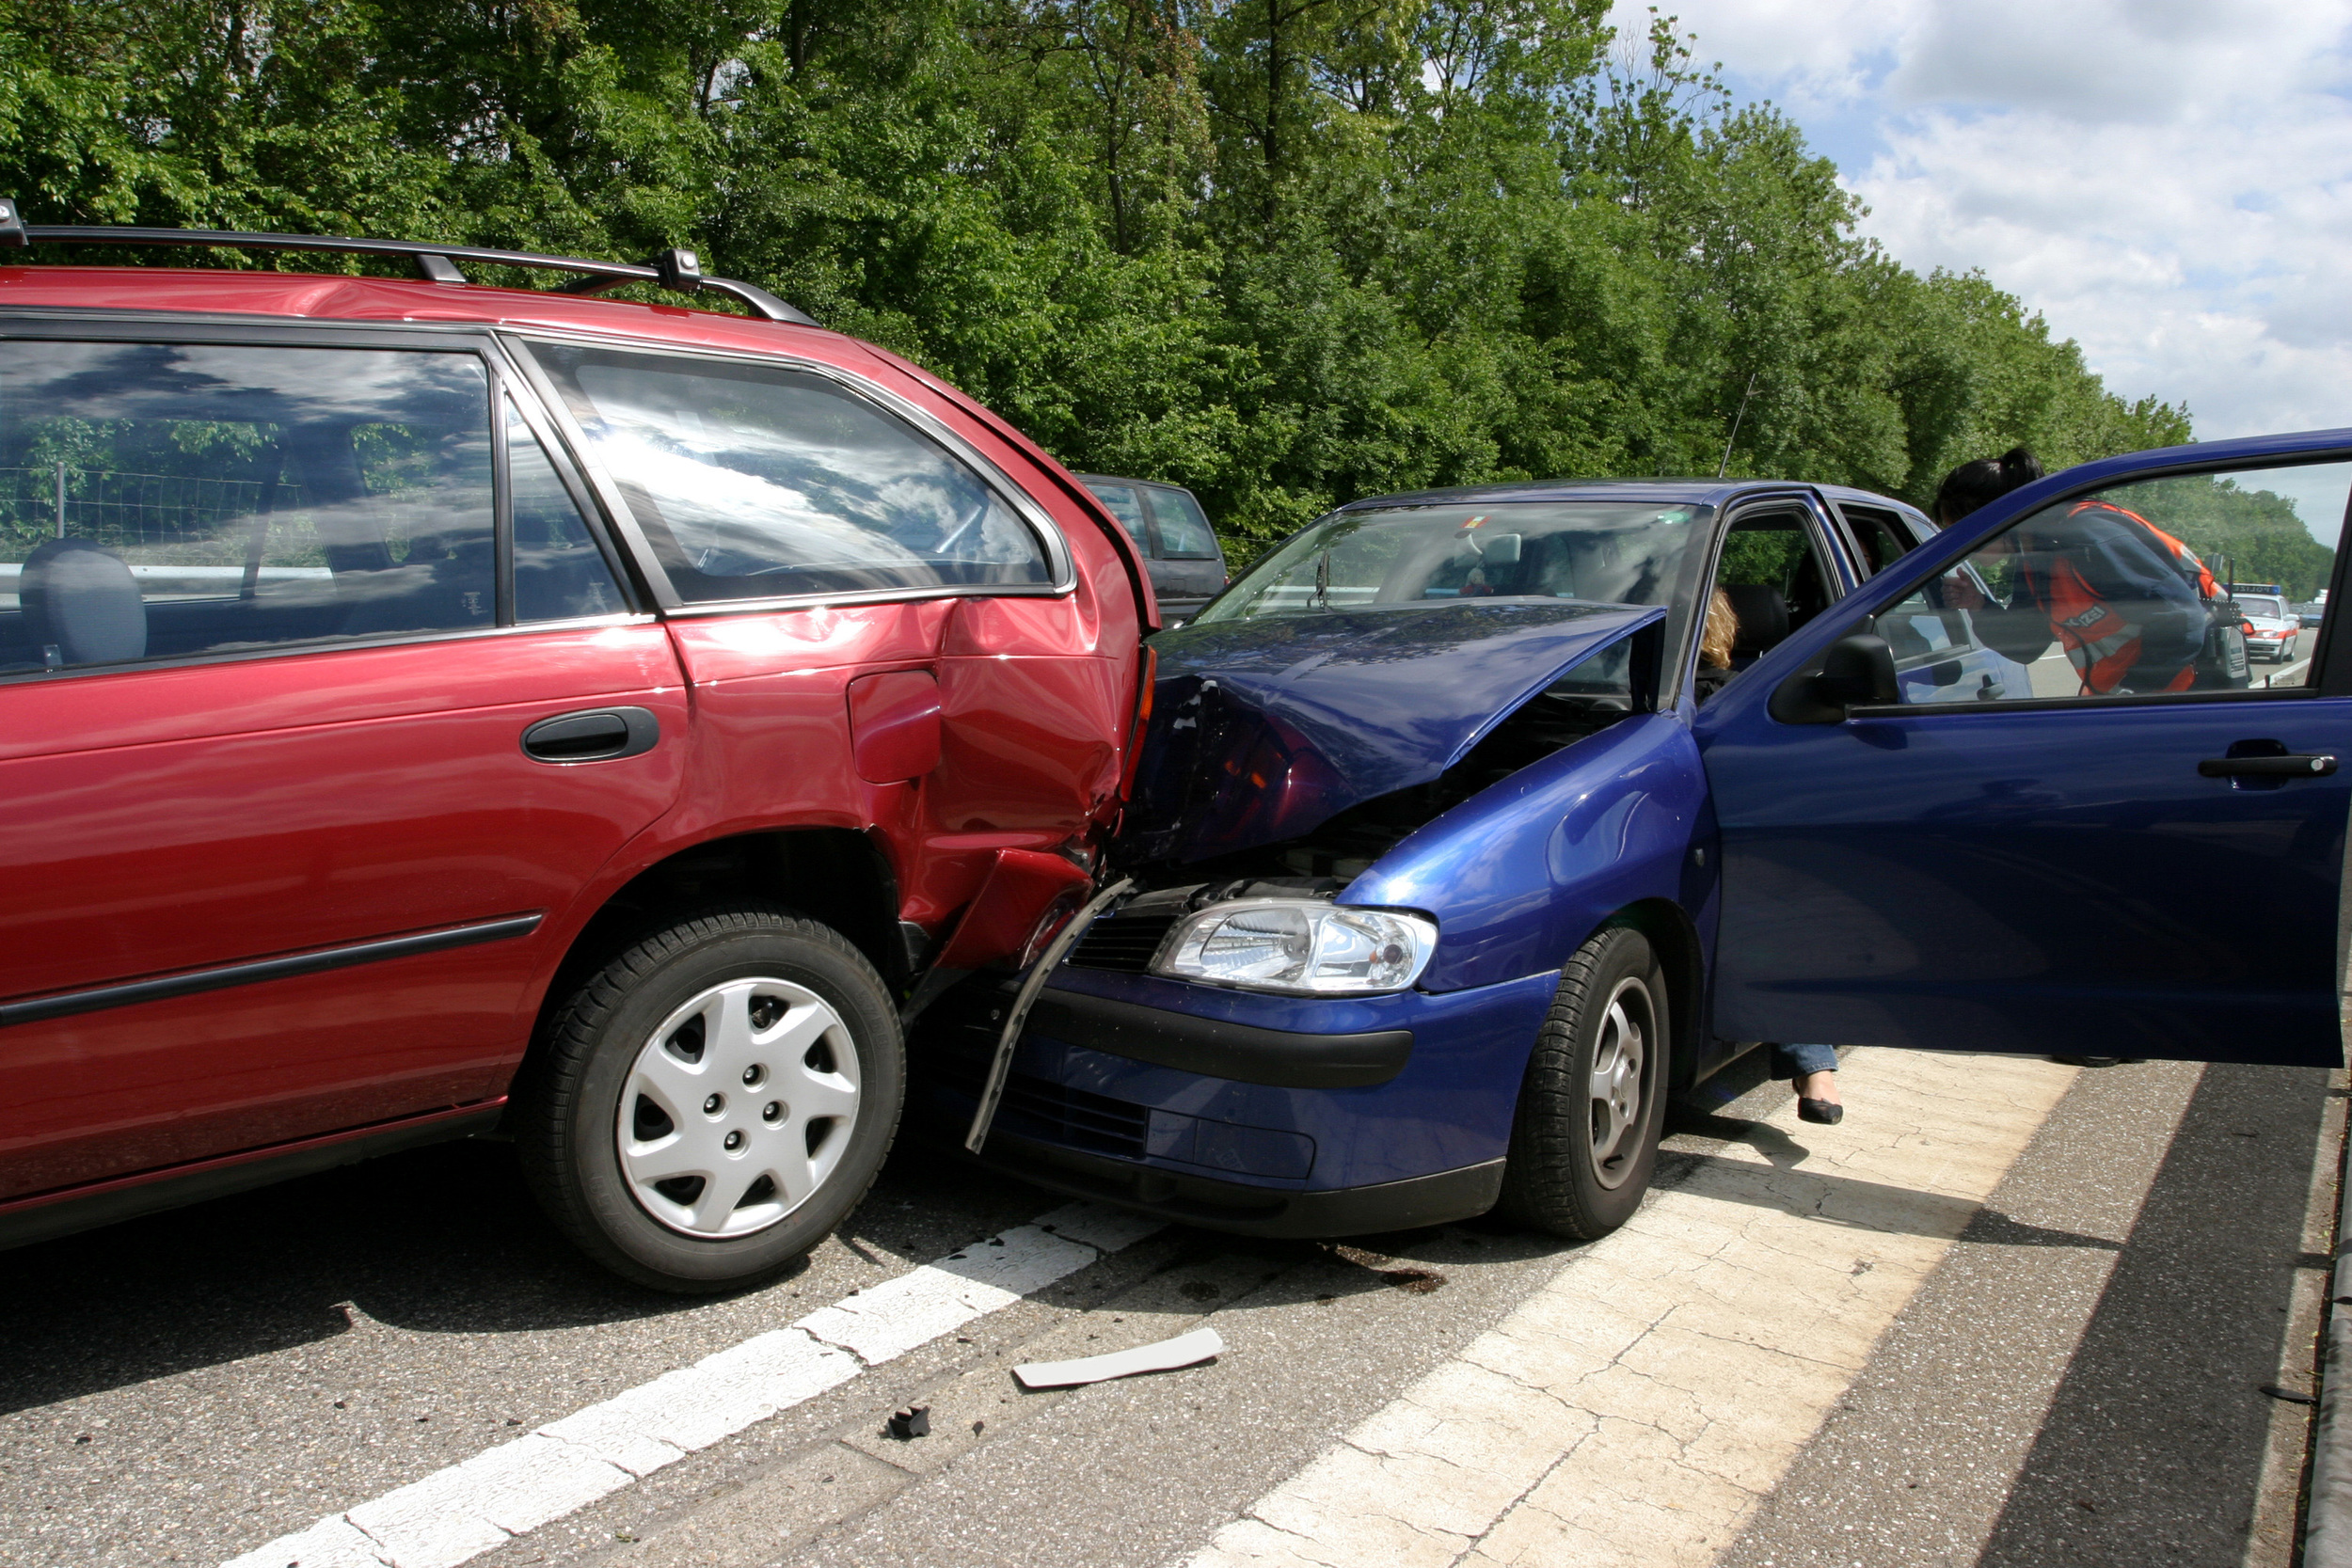 red-blue-car-accident.jpg